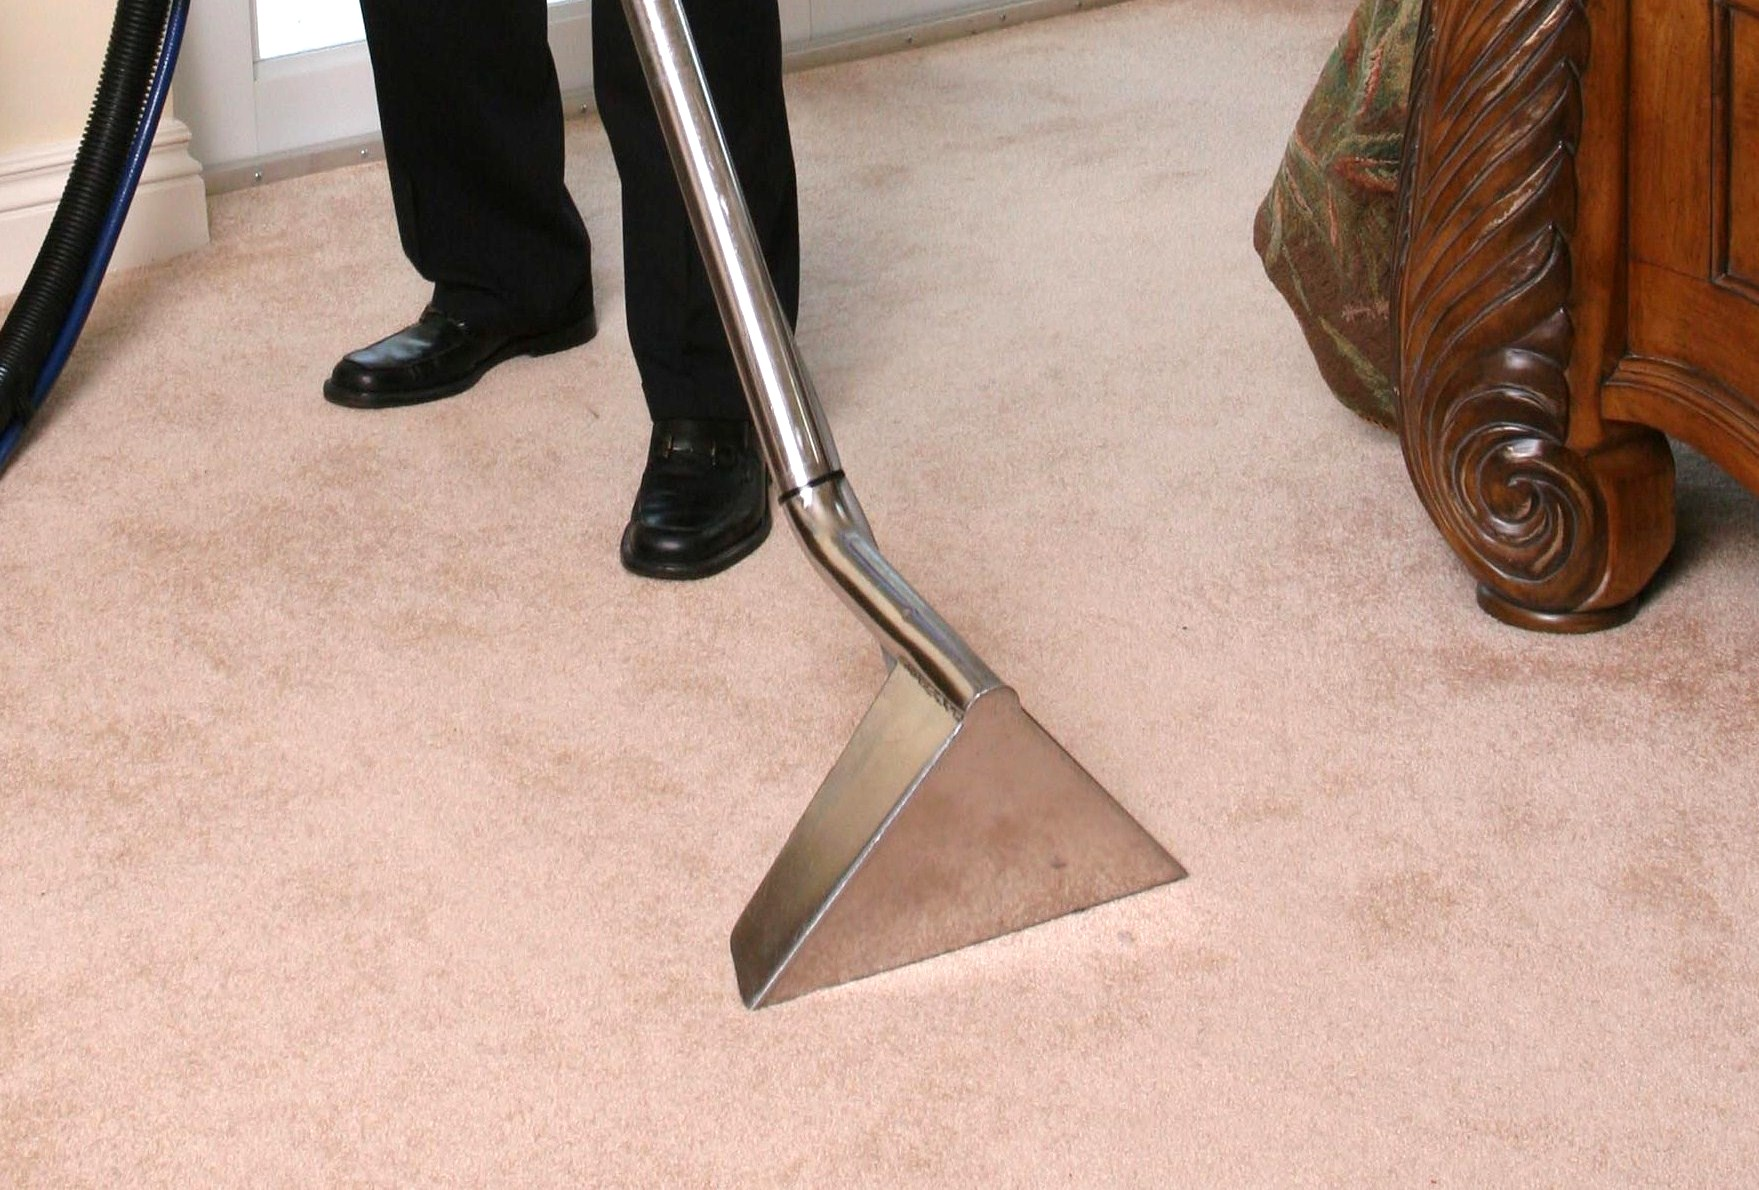 Services Island Carpet Cleaning Victoria Bc